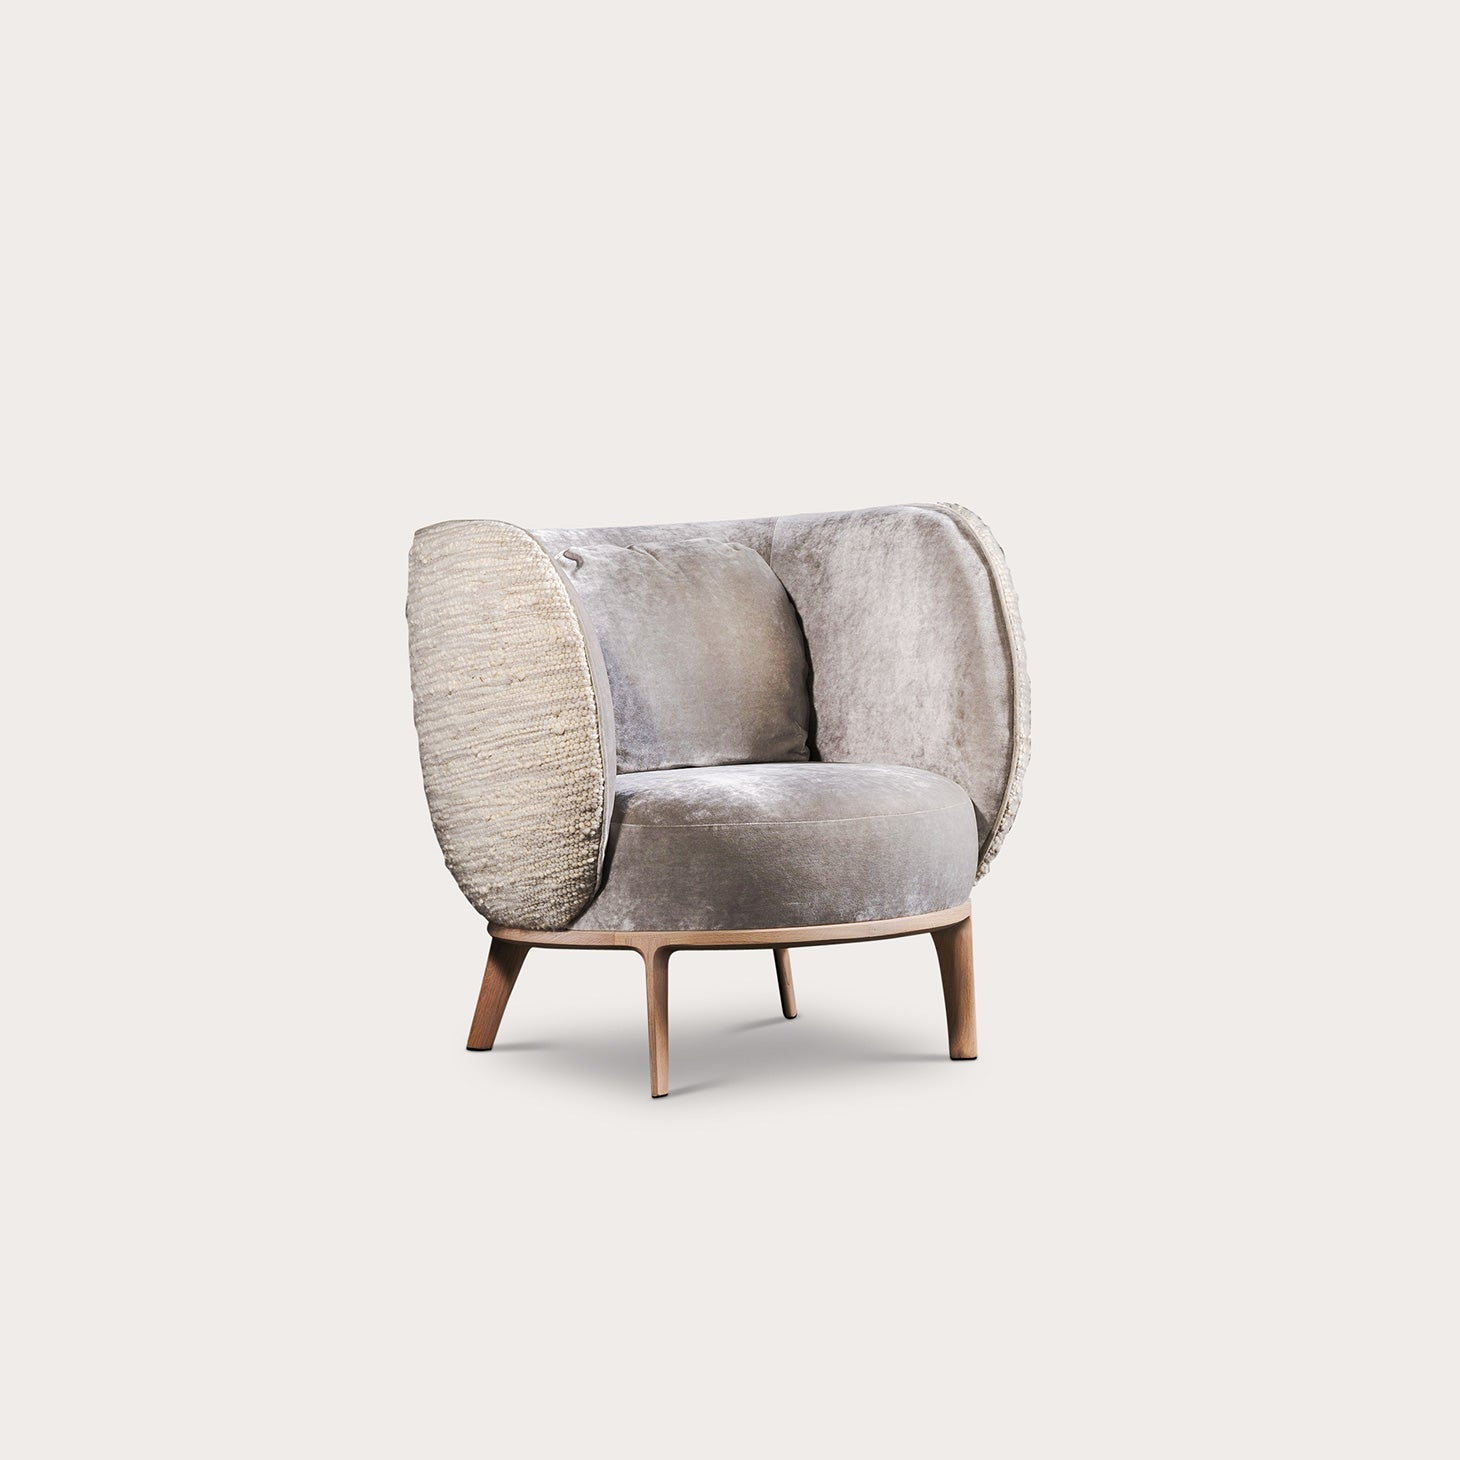 COSONA Armchair Seating Bruno Moinard Designer Furniture Sku: 773-240-10042